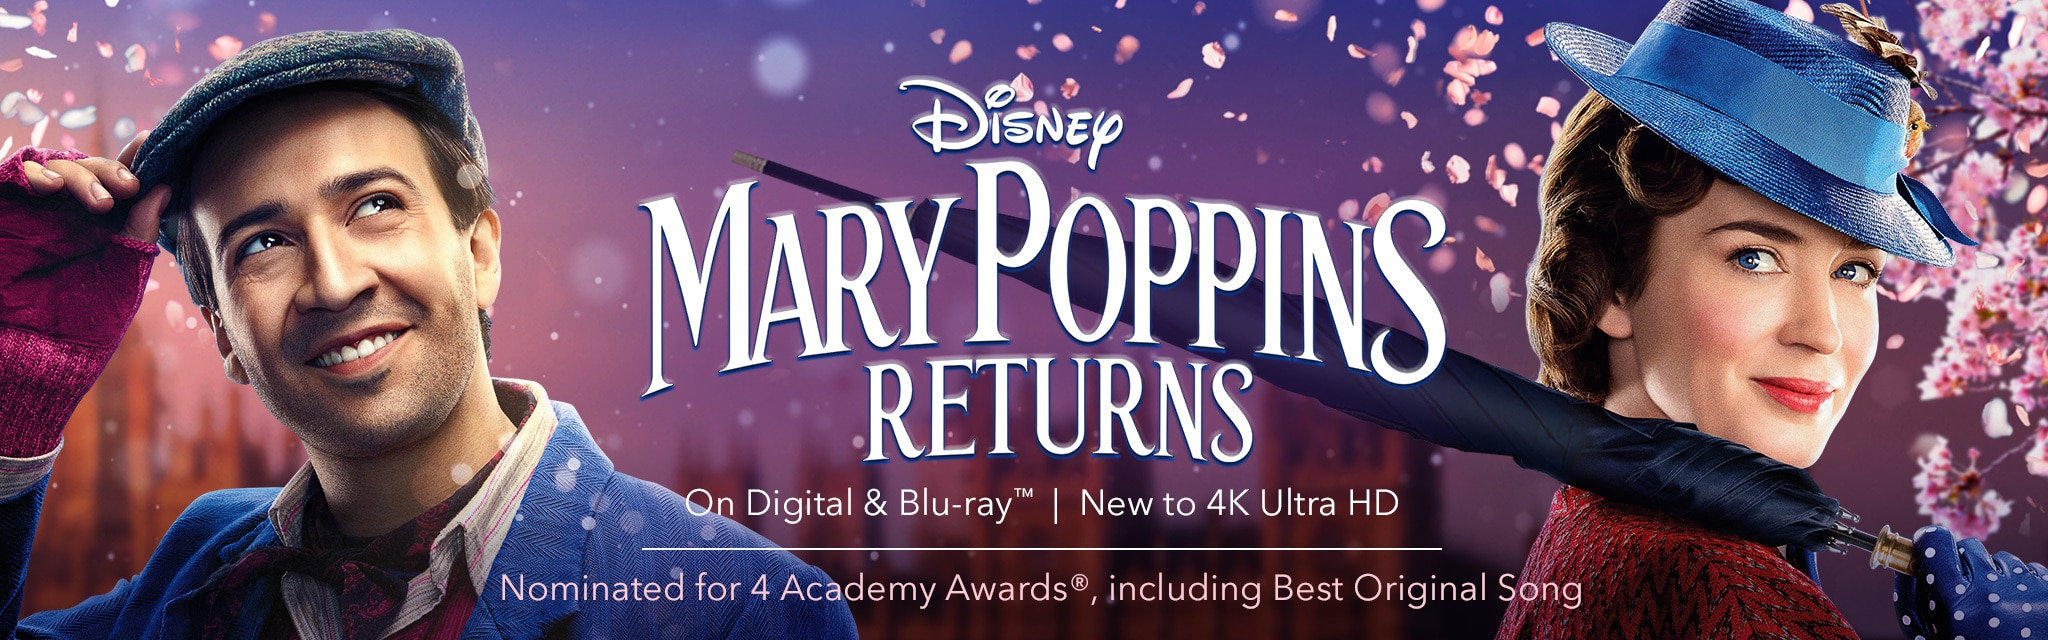 Mary Poppins Returns - Christmas